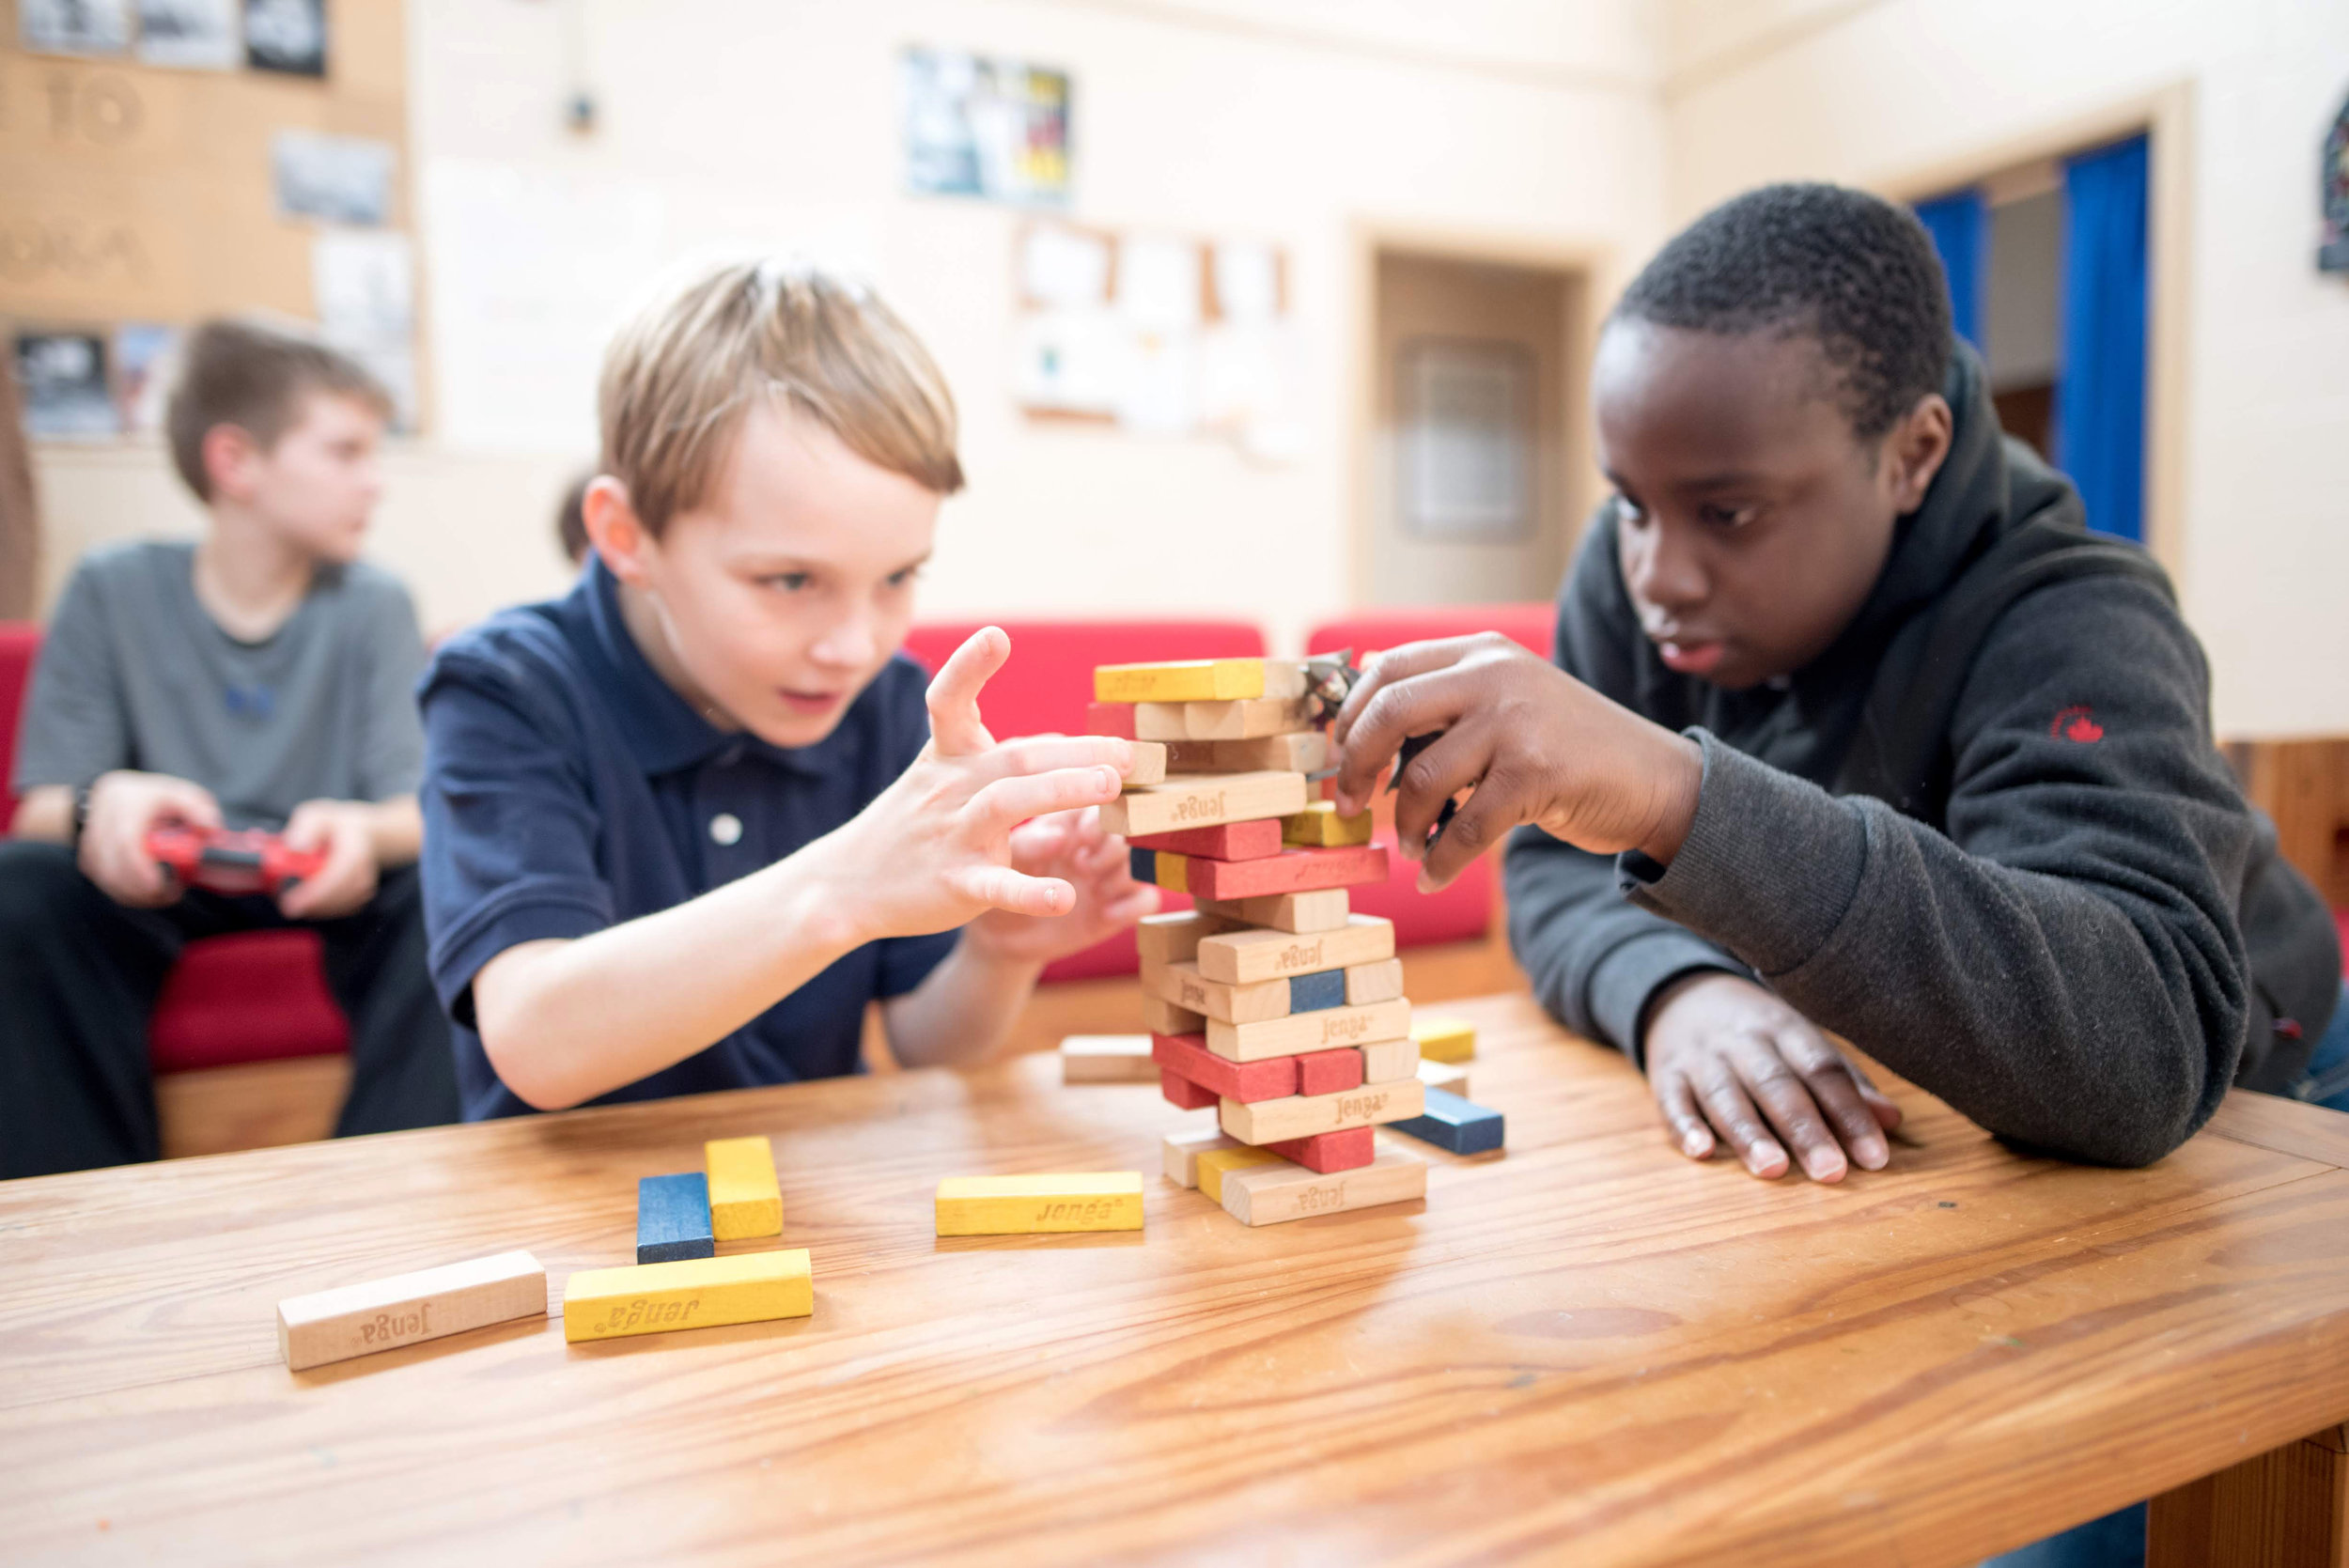 Two Oakland students focus on a game of Jenga.